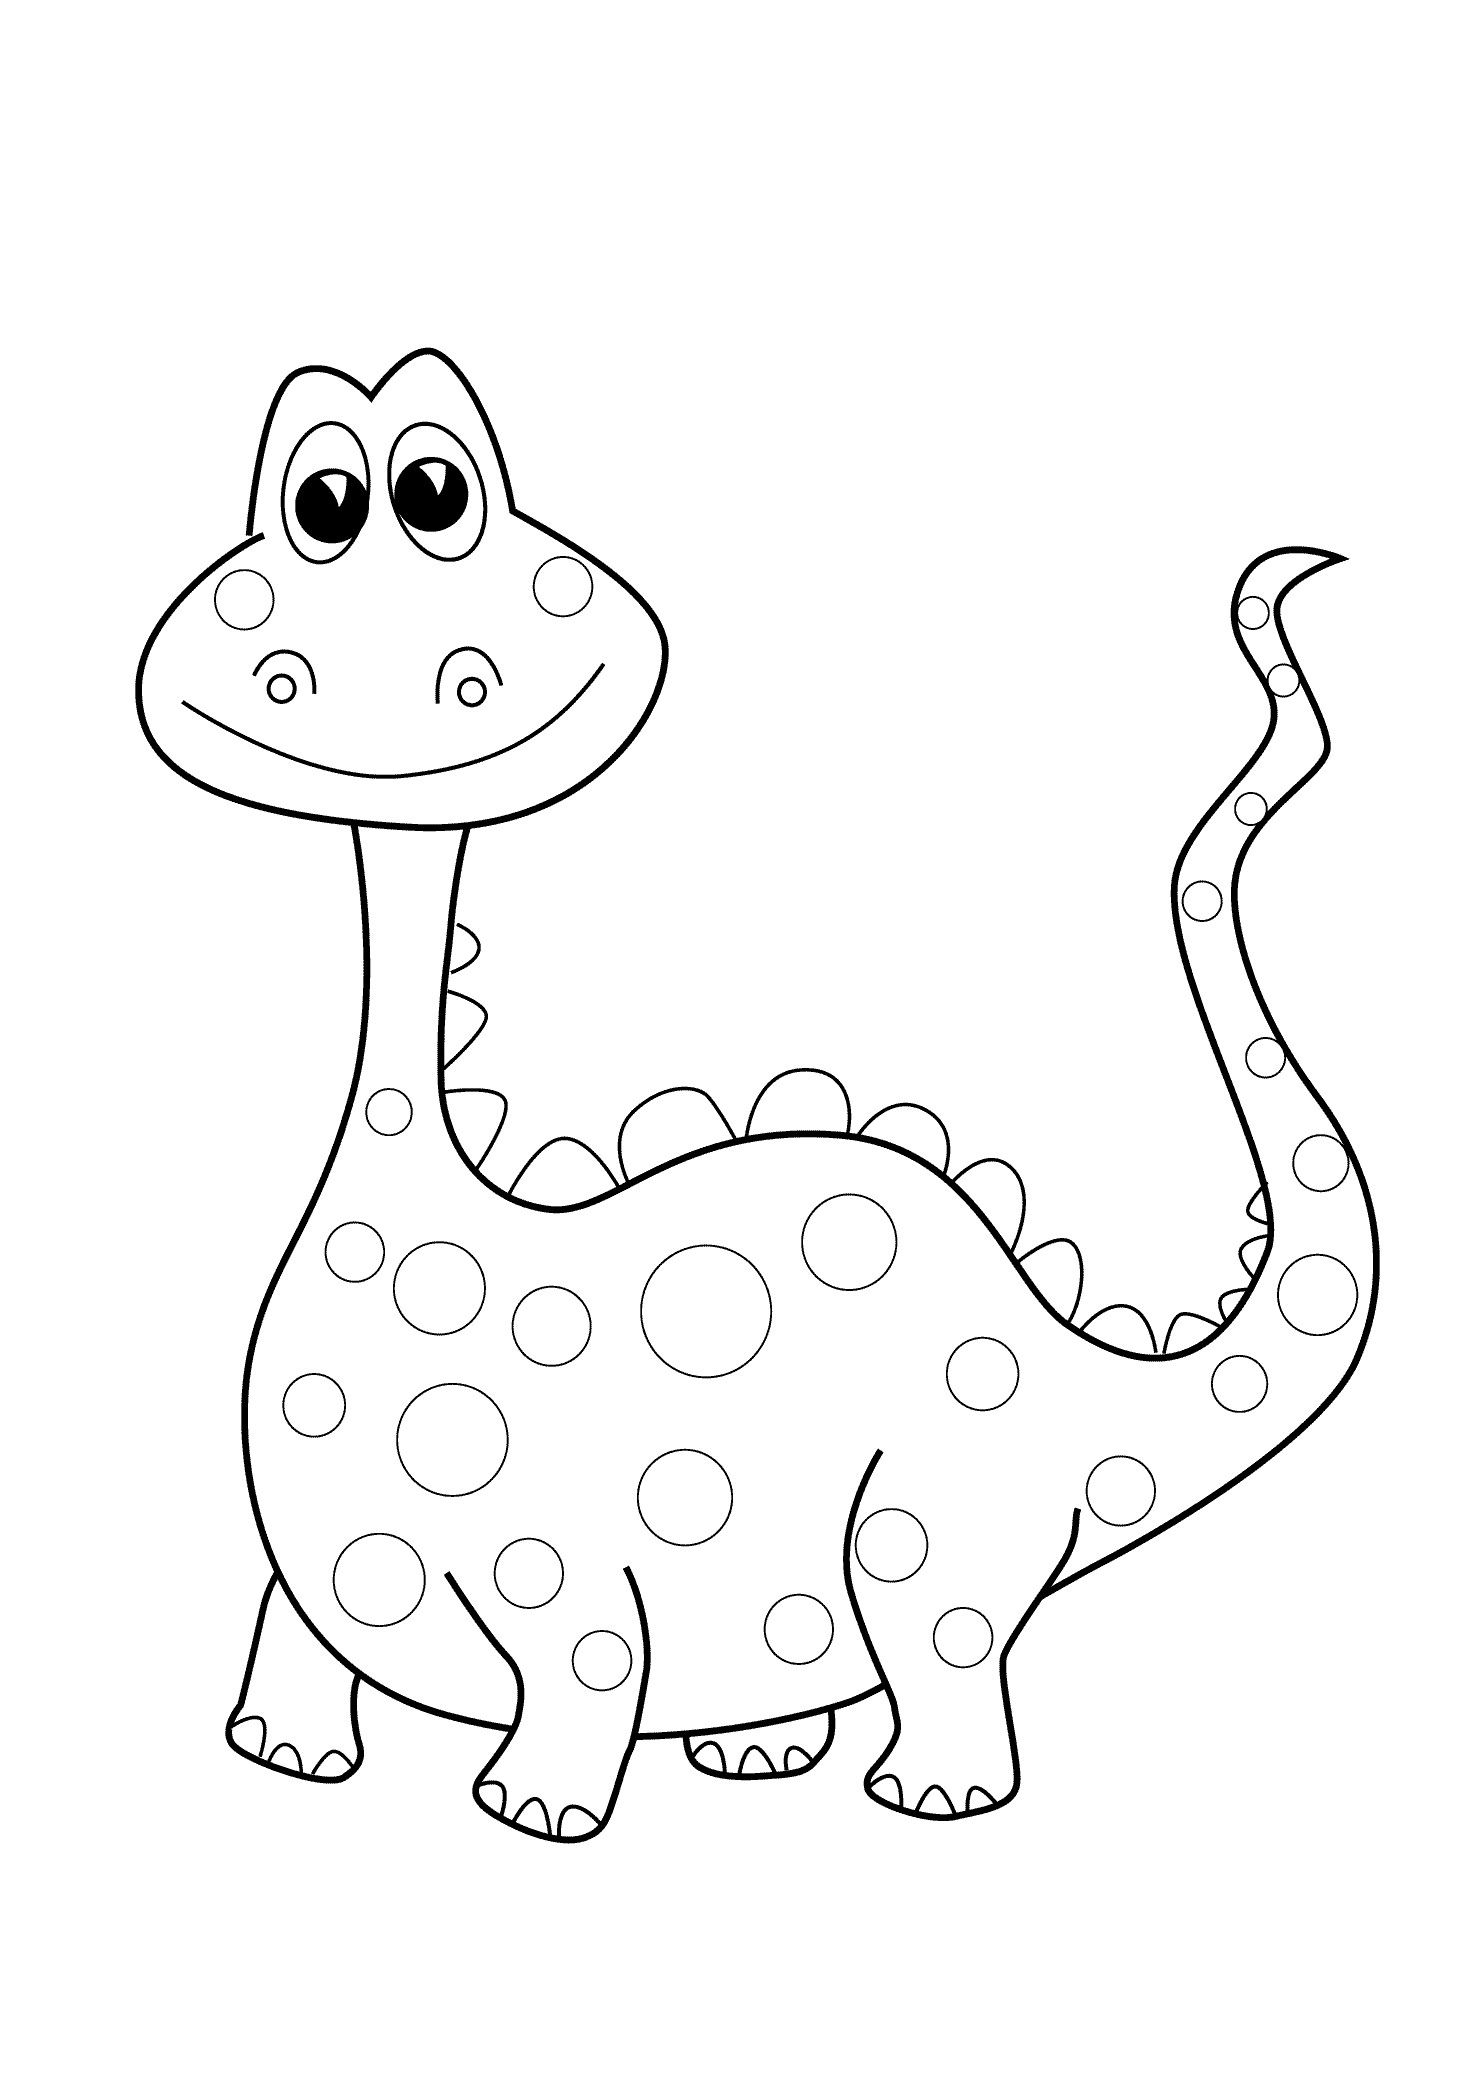 T Rex Coloring Pages Unique Nonsensical Dinosaur For Kids To Color